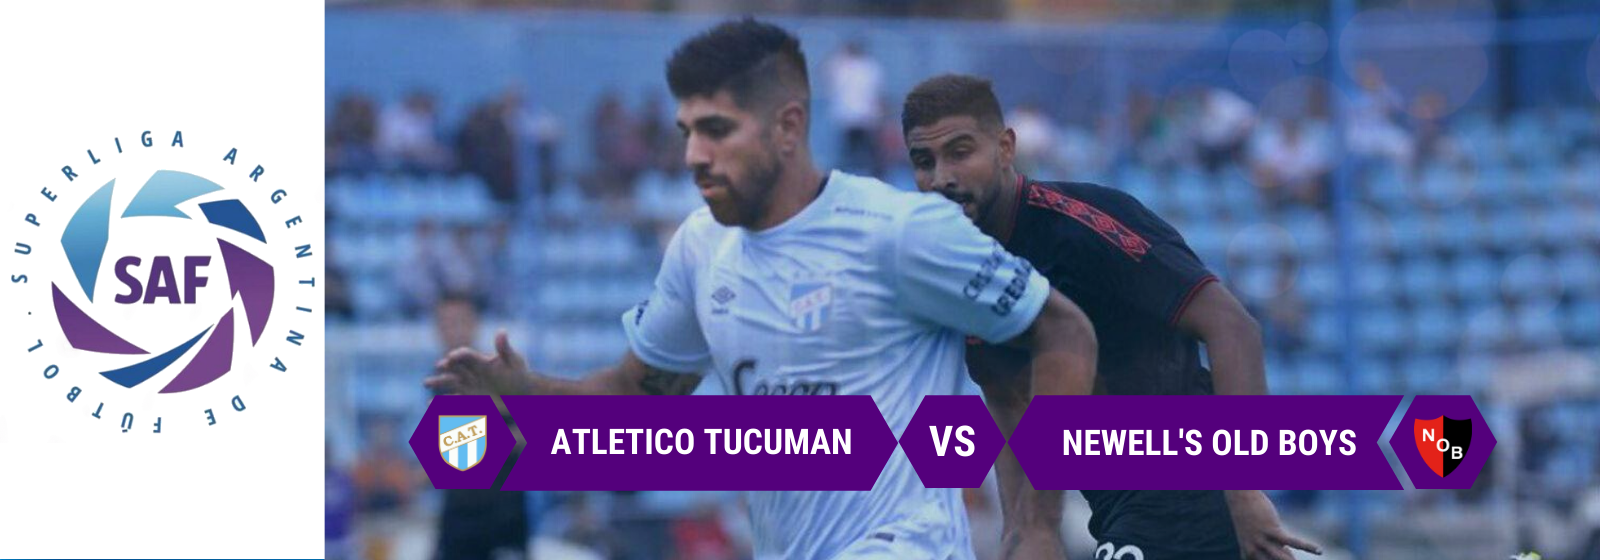 Asianconnect: Atletico Tucuman vs Newell's